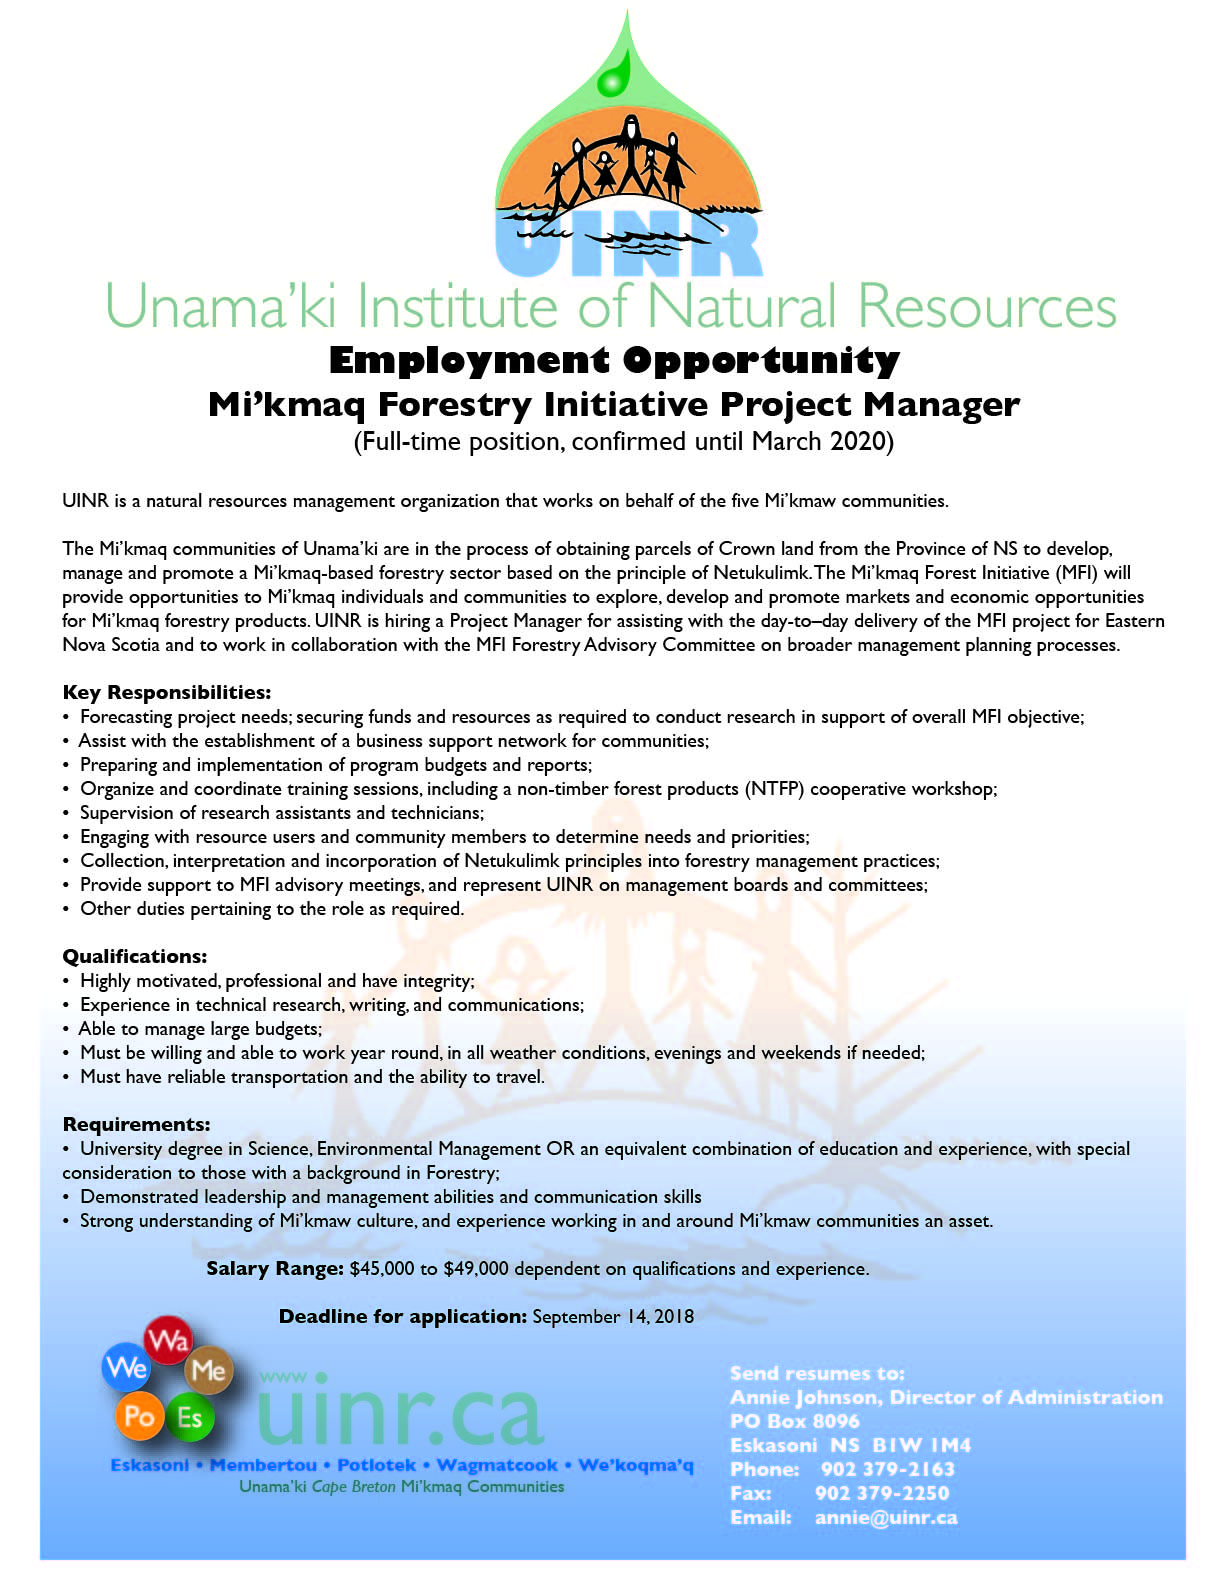 Employment Opportunity – Mi'kmaq Forestry Initiative Project Manager